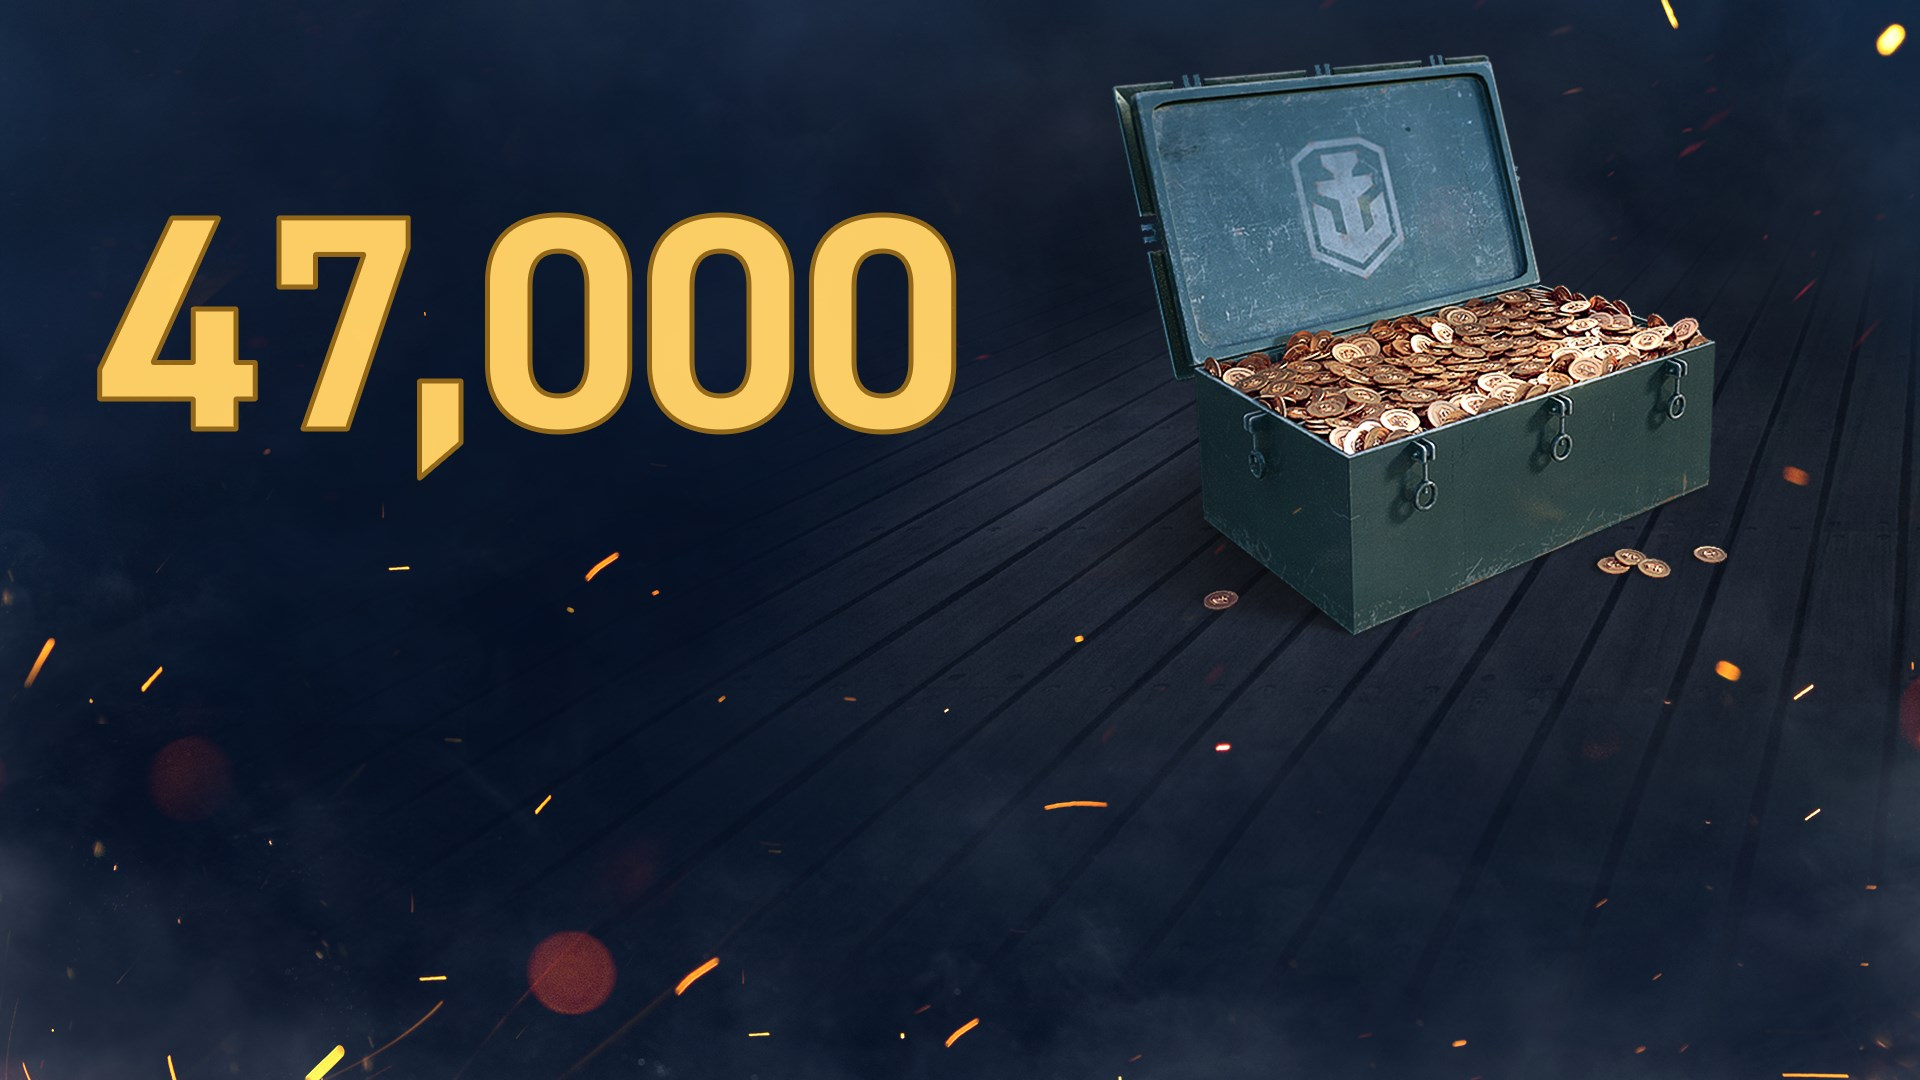 World of Warships: Legends - 47,000 Doubloons